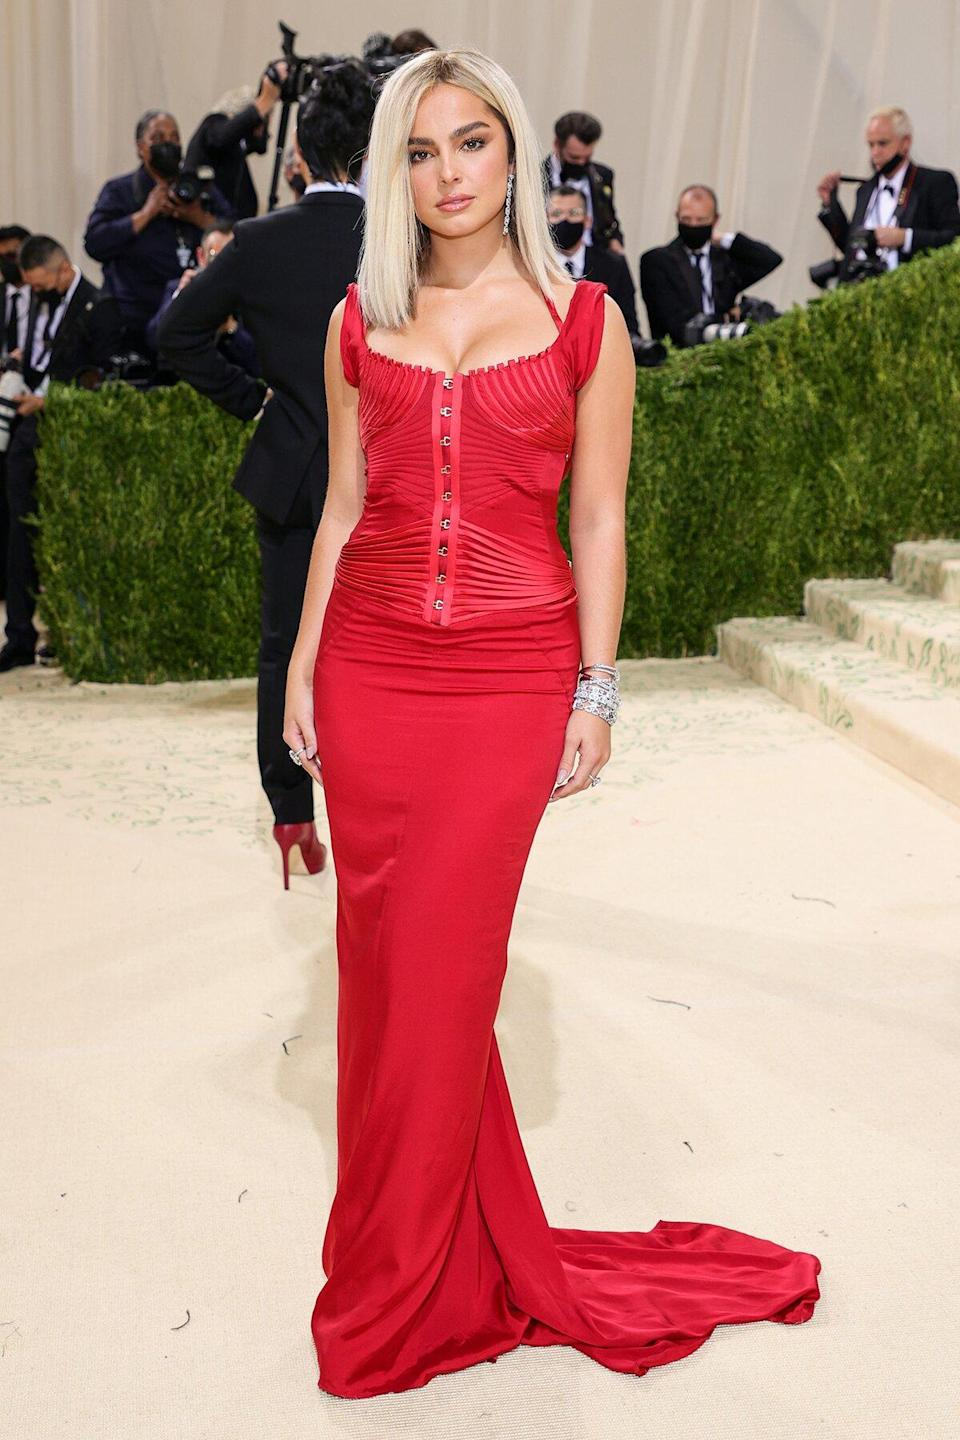 Addison Rae attends The 2021 Met Gala Celebrating In America: A Lexicon Of Fashion at Metropolitan Museum of Art on September 13, 2021 in New York City.